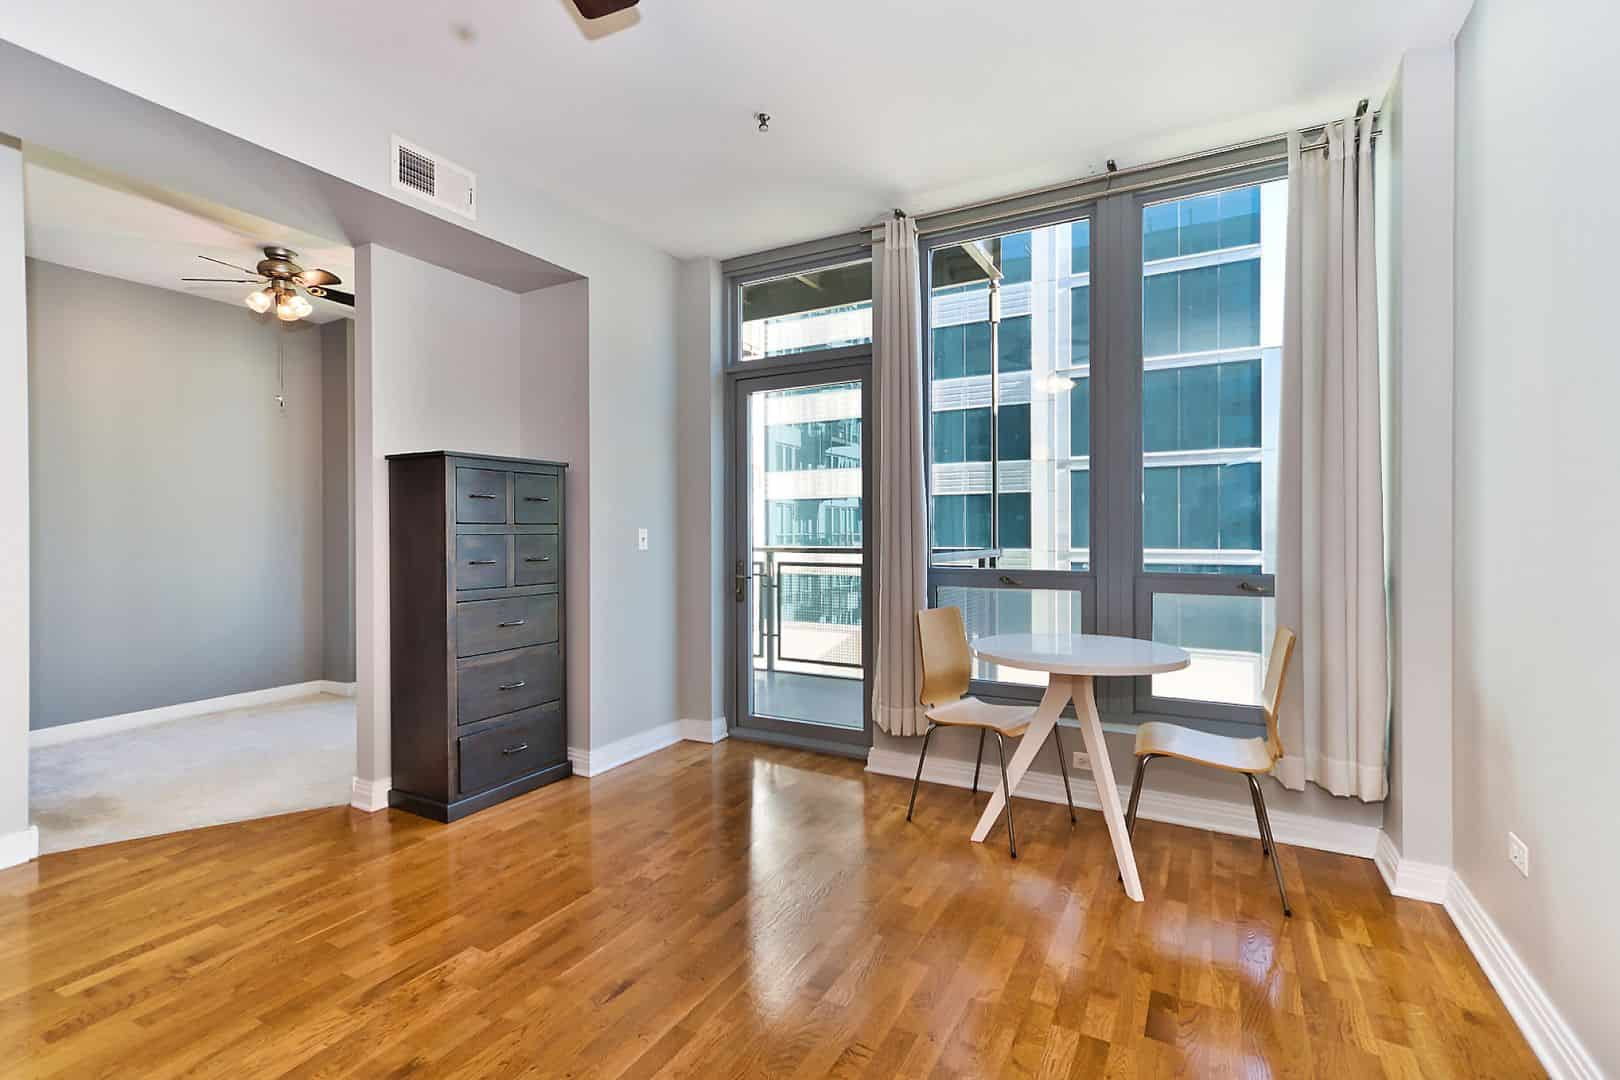 West Loop Junior One Bedroom Condo - 565 W Quincy Street, Unit 1211, Chicago, IL 60661 - Living - Bedroom Alcove